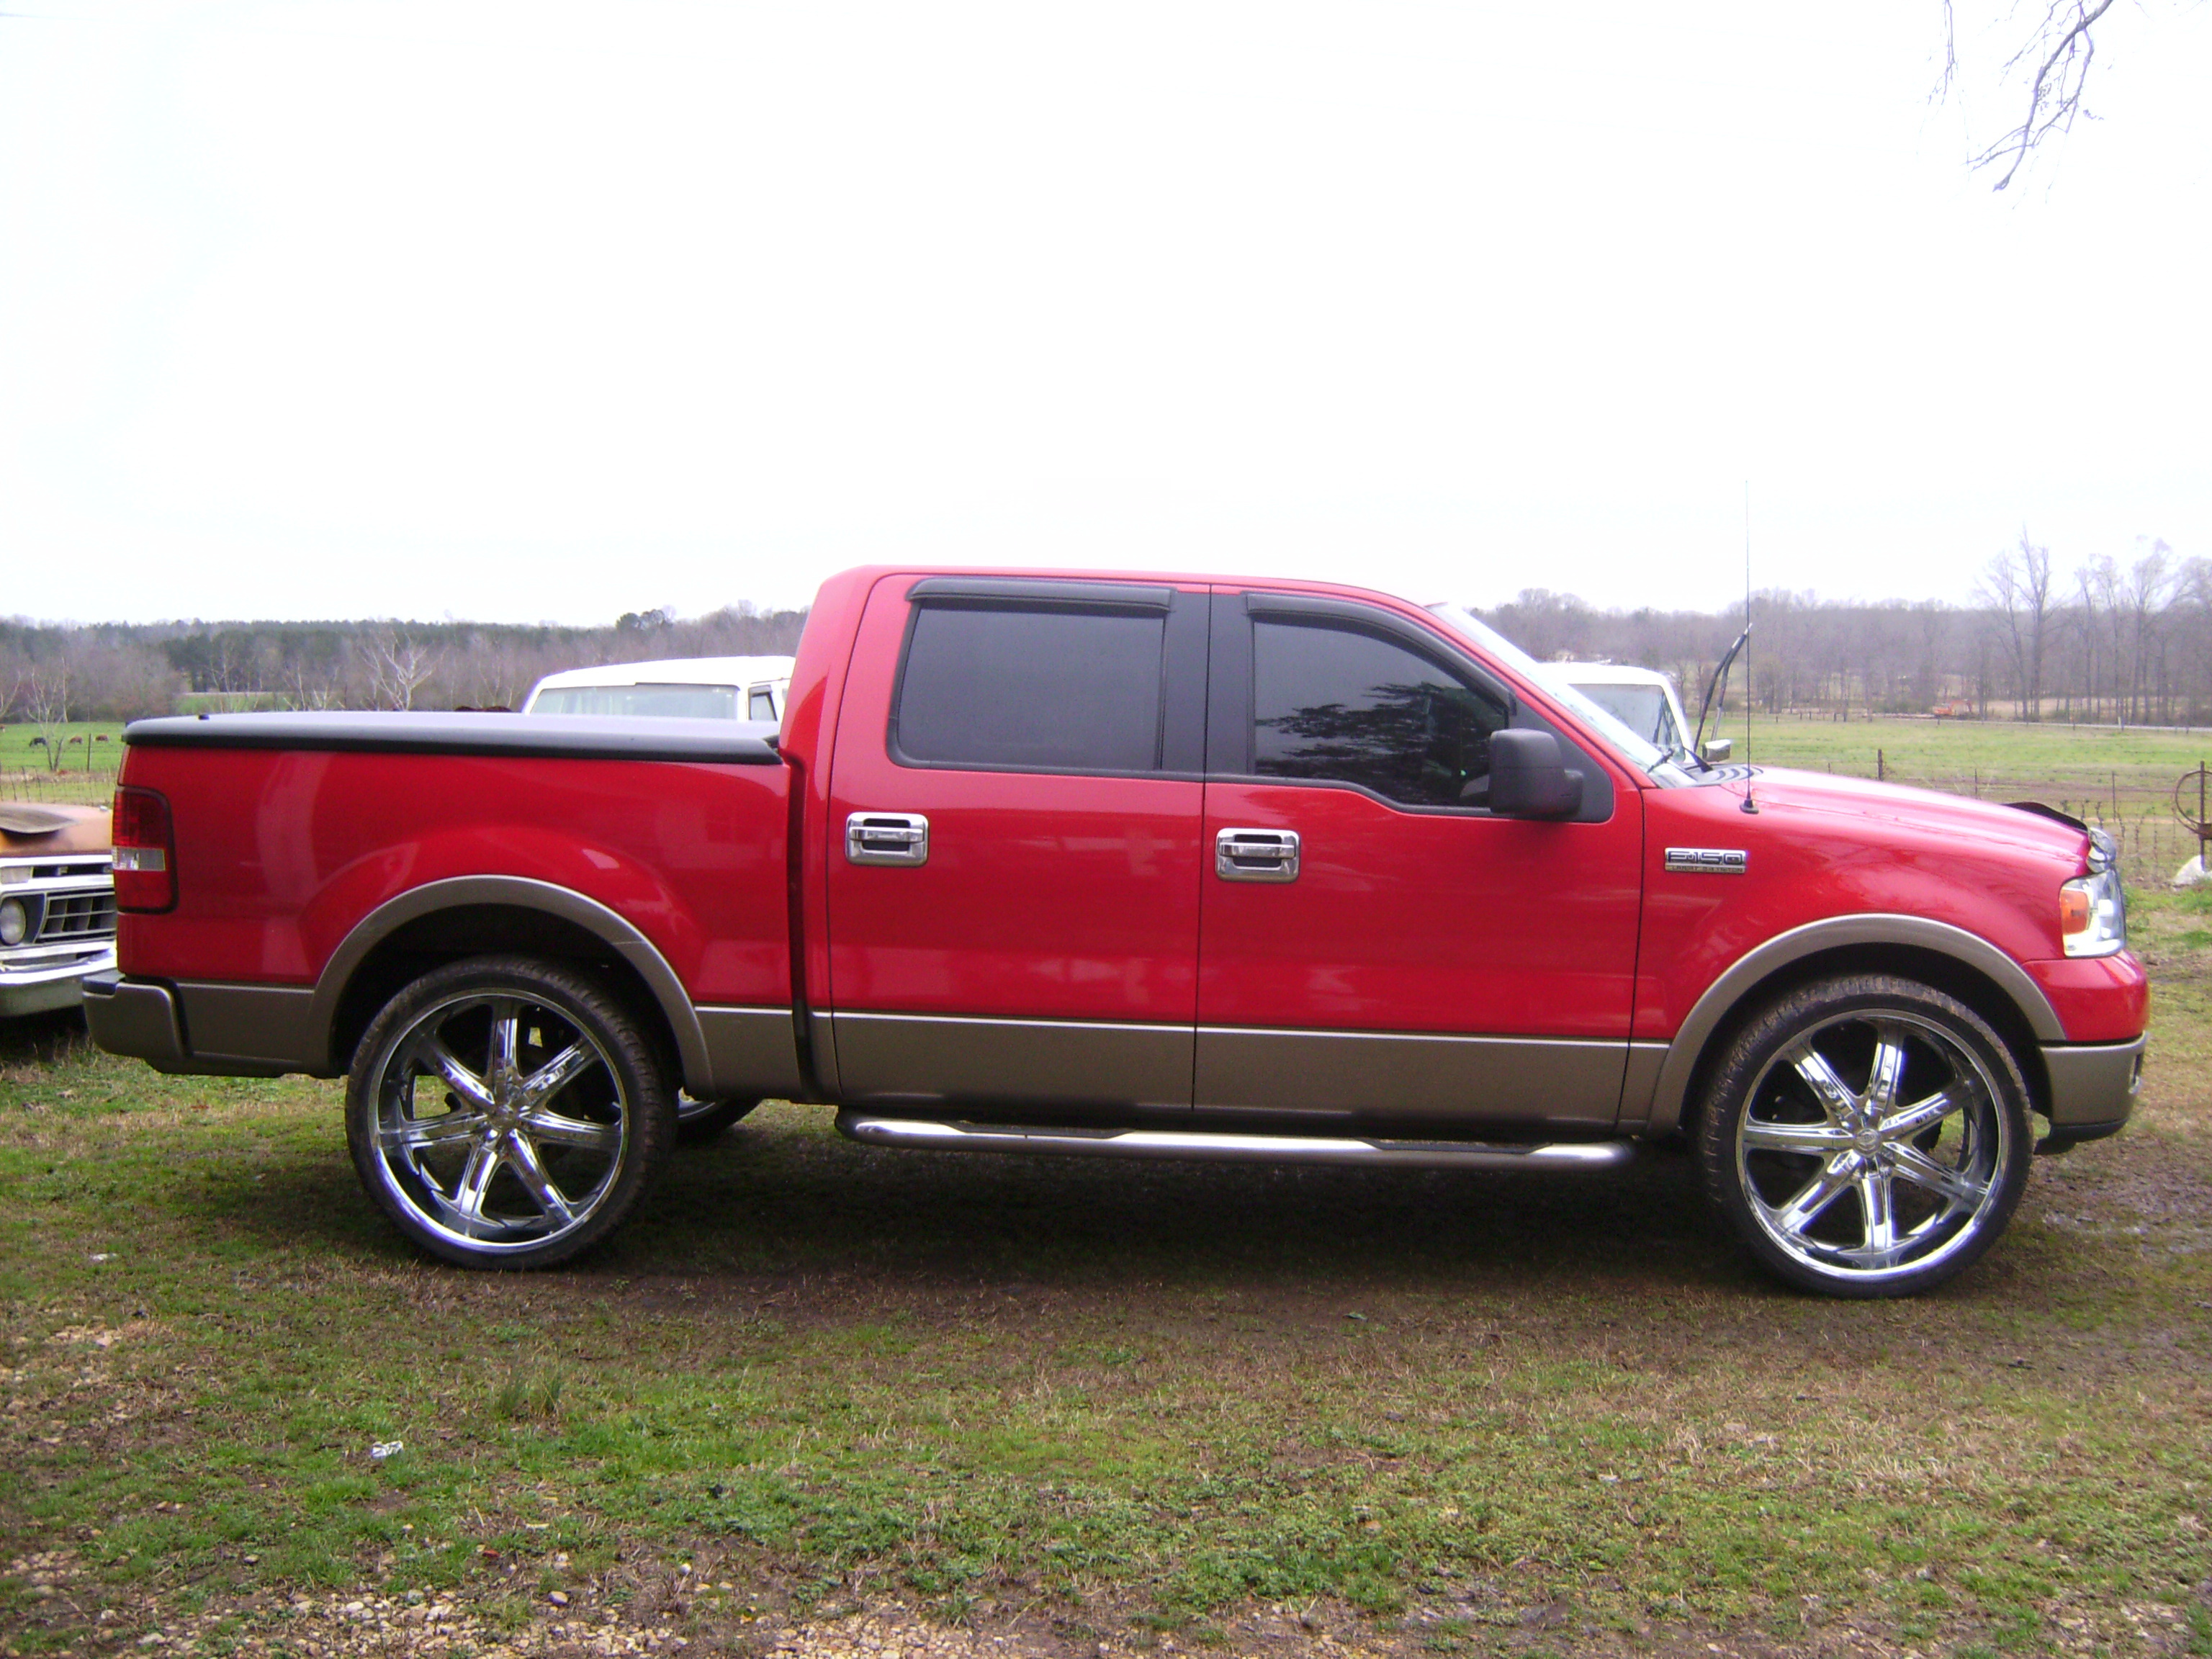 slabrida 2005 ford f150 regular cab specs photos modification info at cardomain. Black Bedroom Furniture Sets. Home Design Ideas